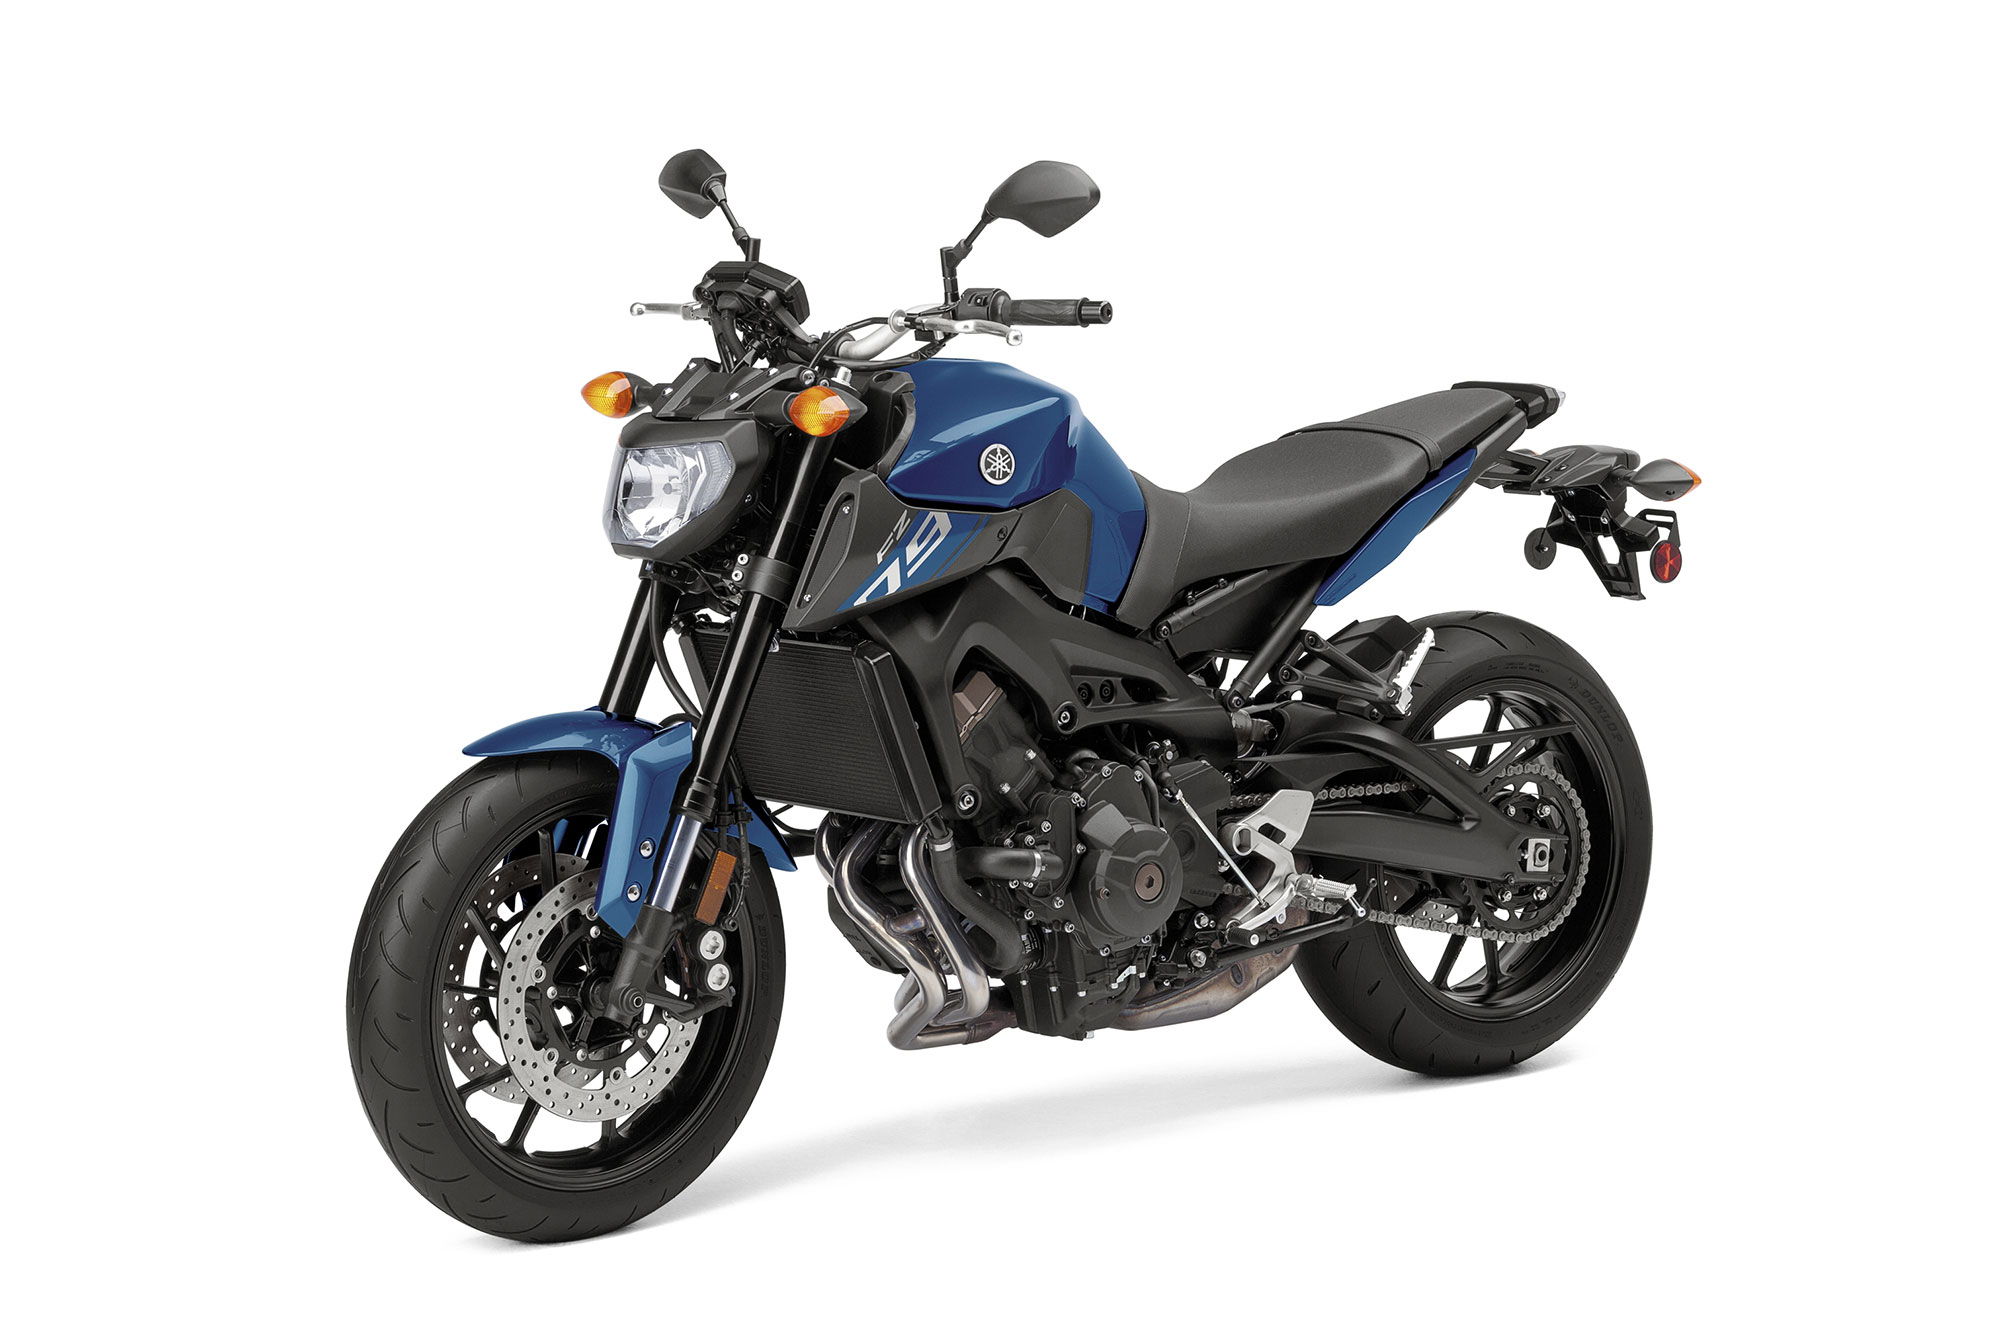 2016 yamaha fz 09 review for Yamaha fz 09 horsepower